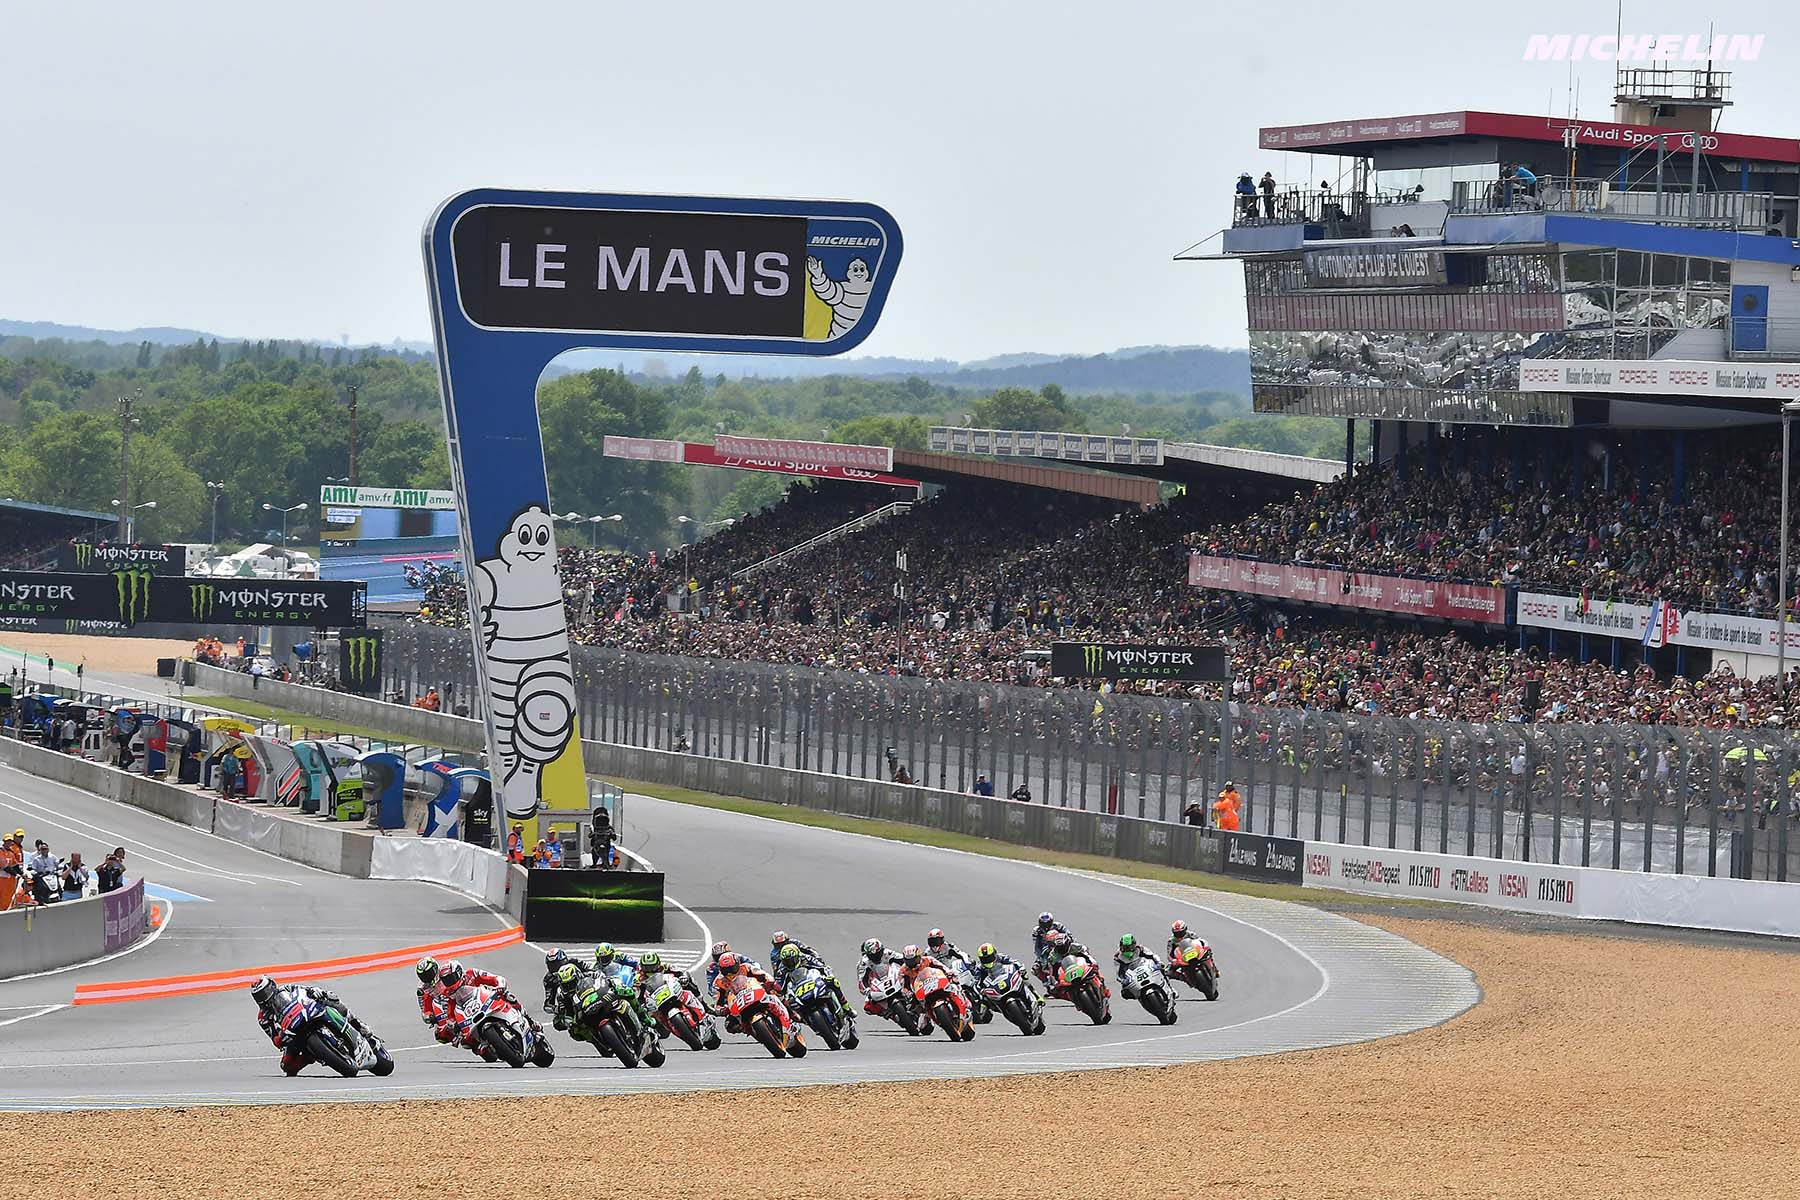 French MotoGP travel packages